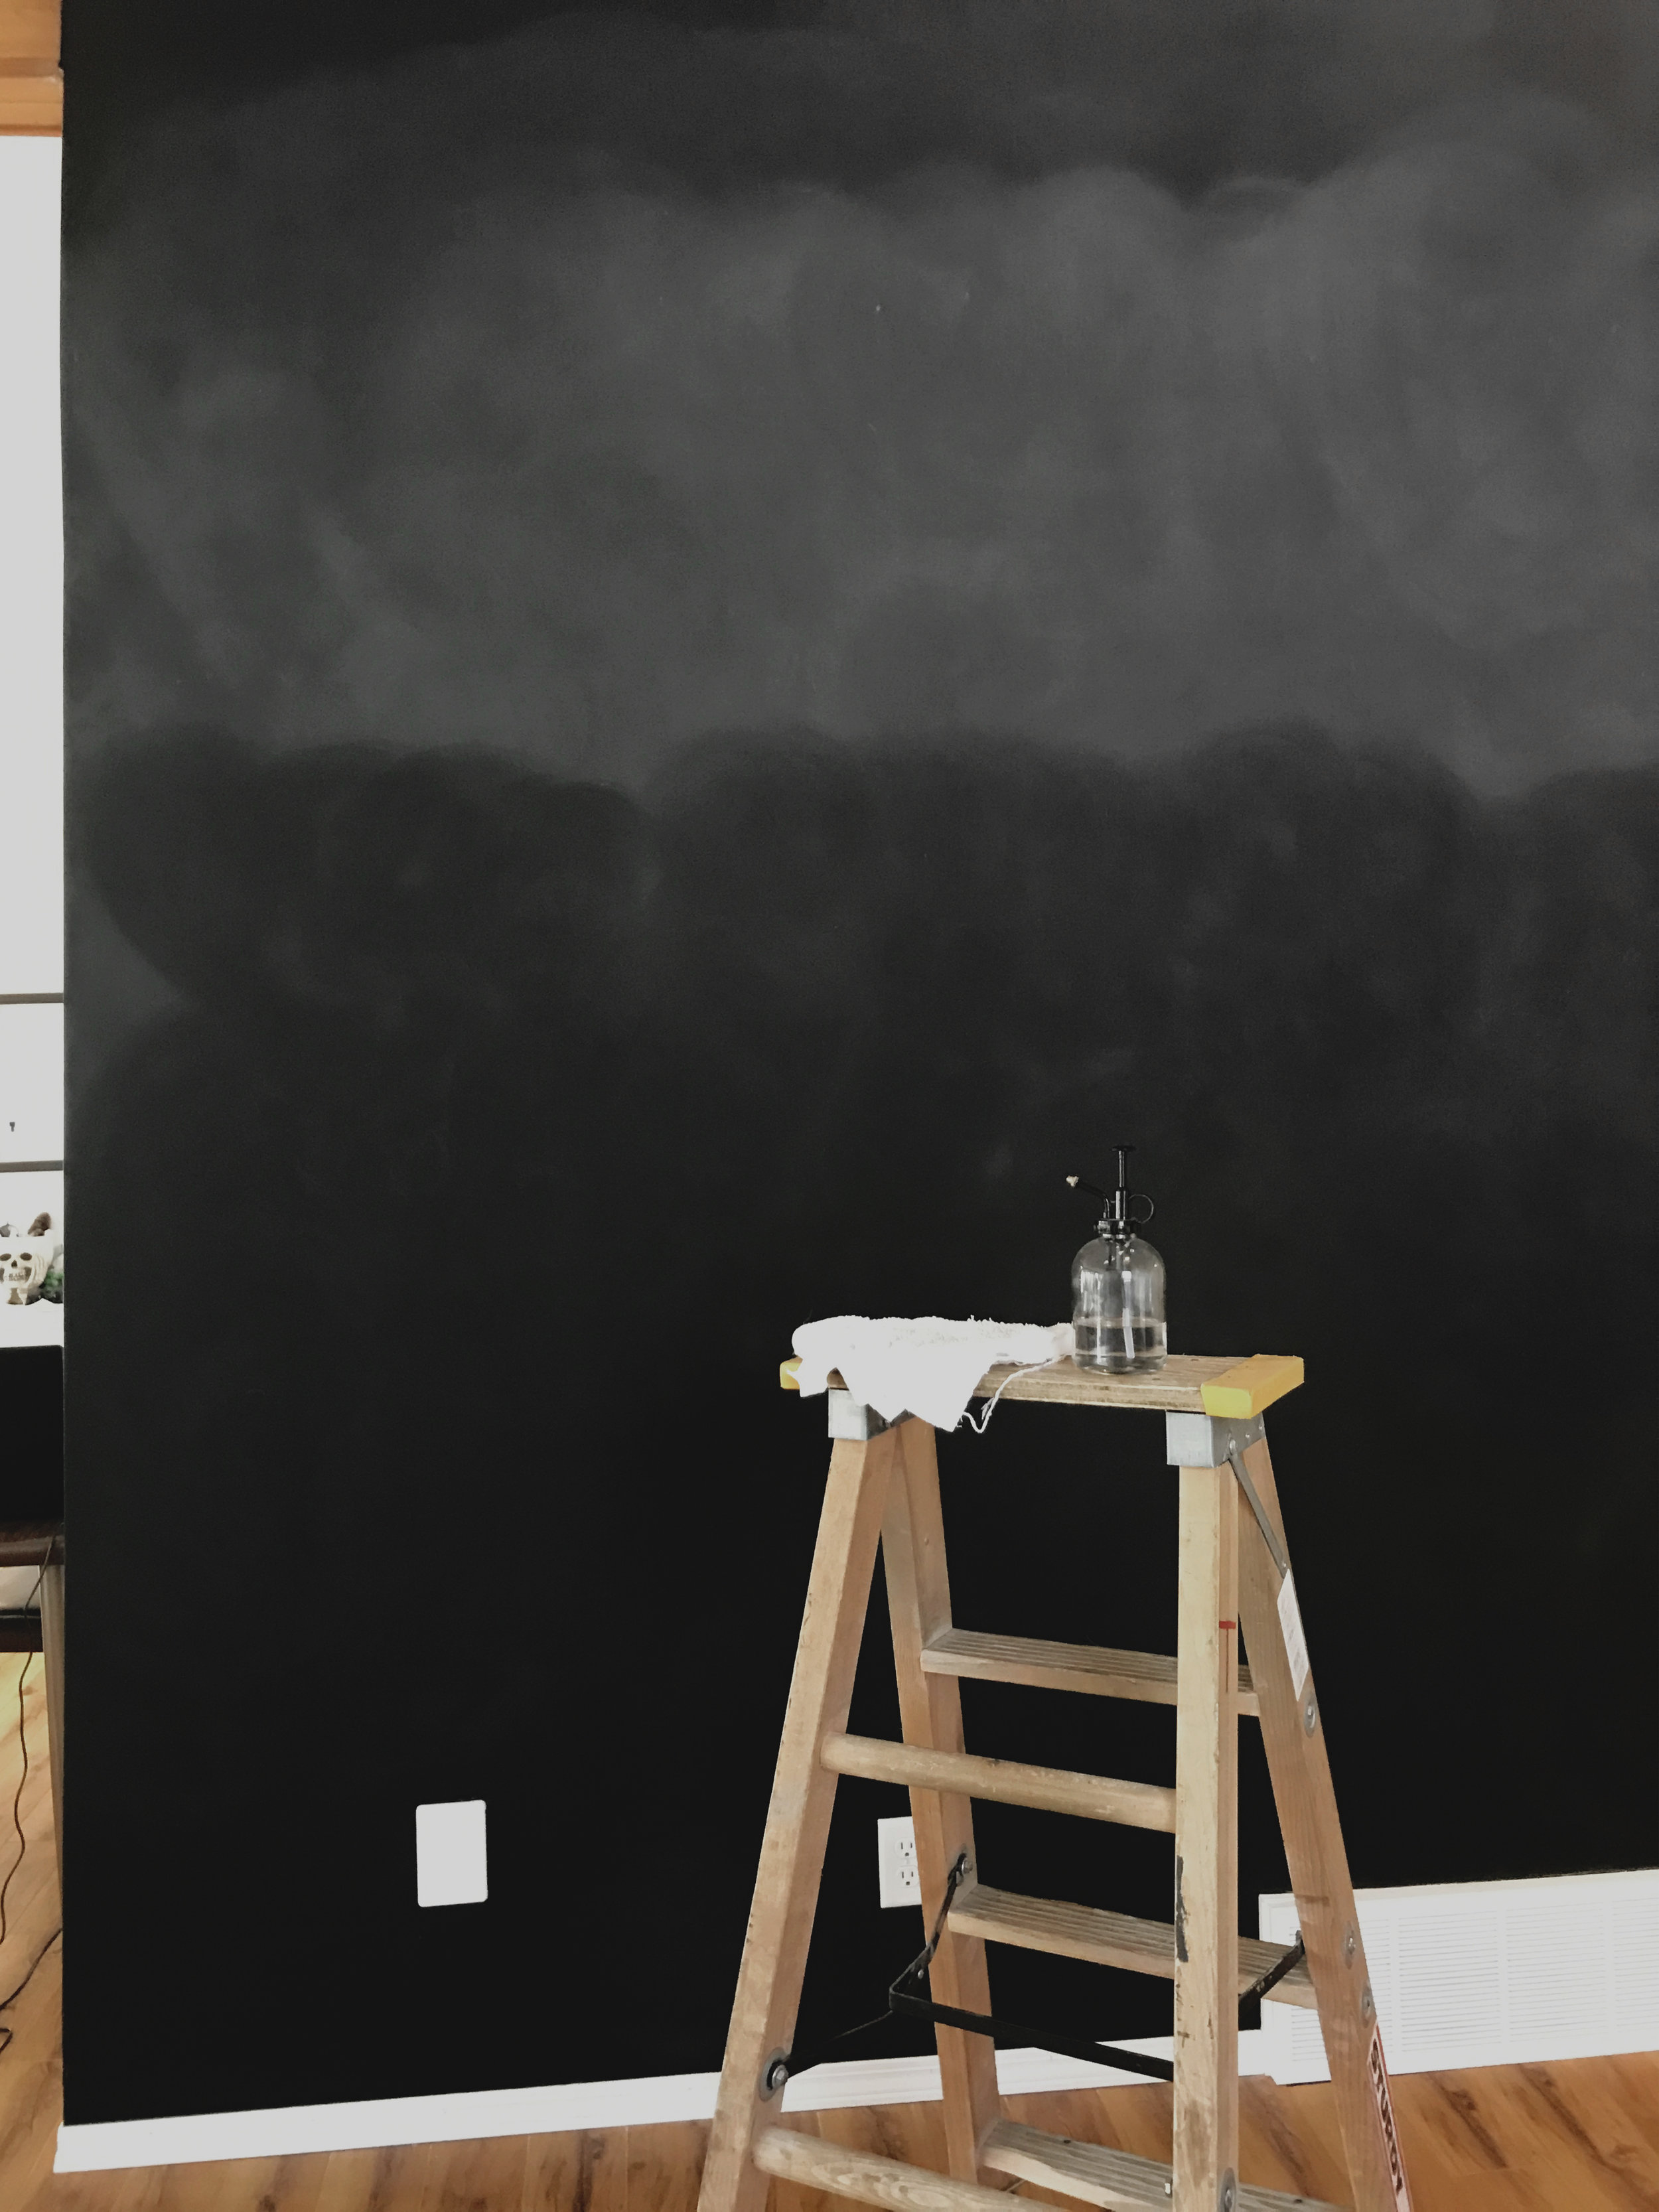 How To Make A Chalkboard Wall in Any Room - KAESPO Creative, Edmonton Designer & Blogger